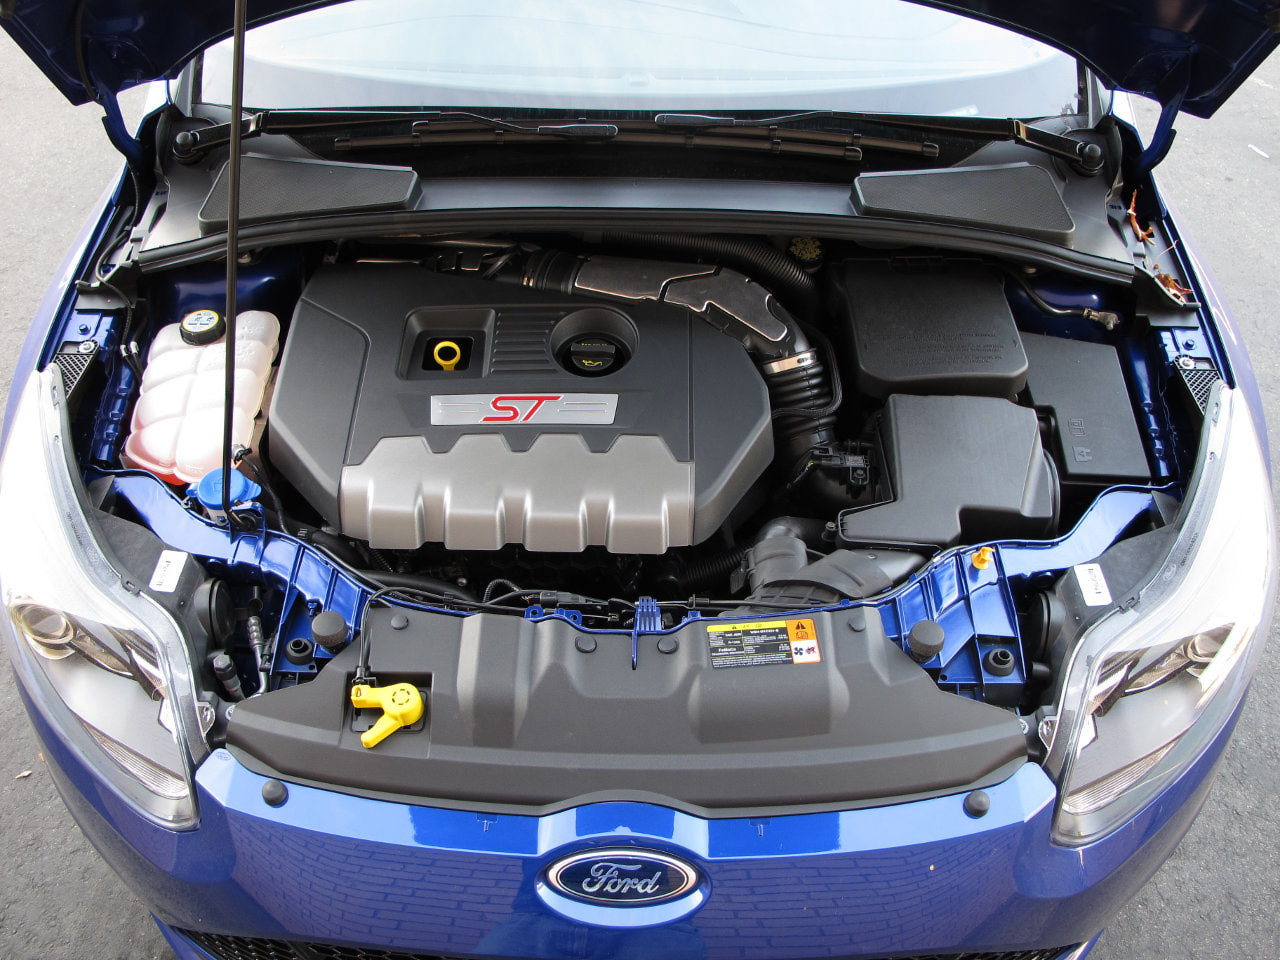 Ford Focus St Engine Pin X Cars